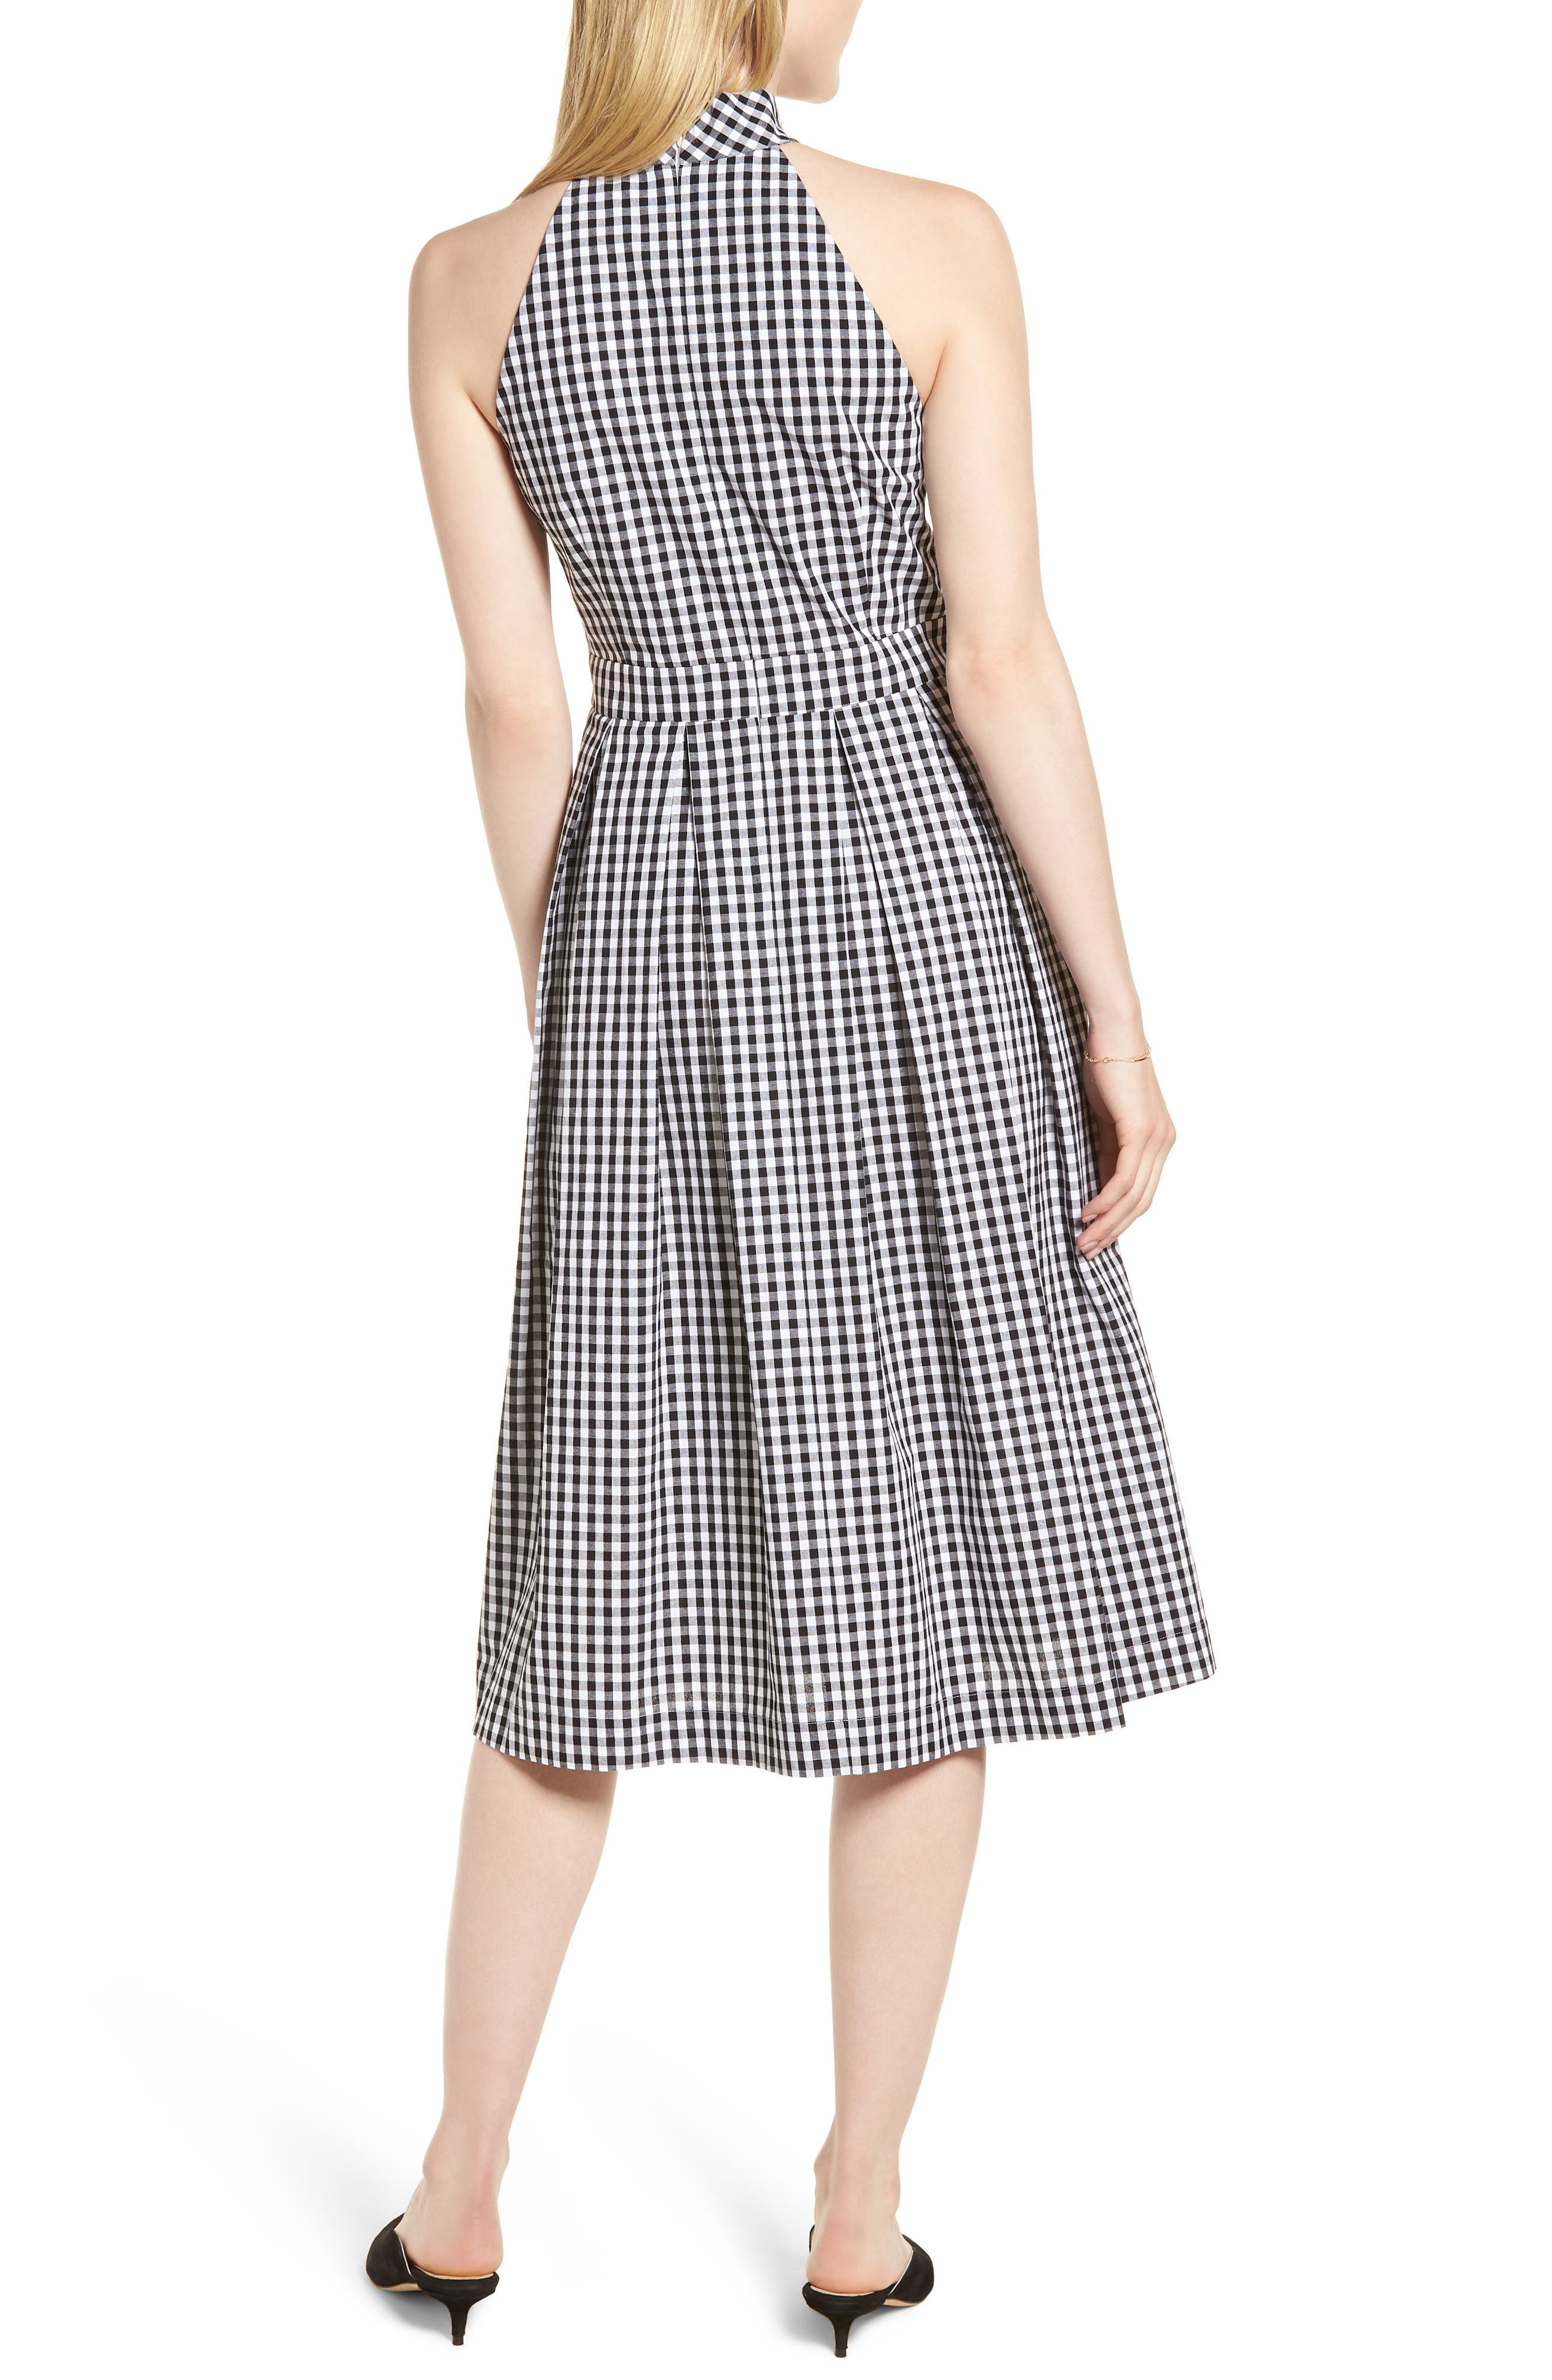 Gingham Halter Dress,                             Alternate thumbnail 2, color,                             Black- White Gingham